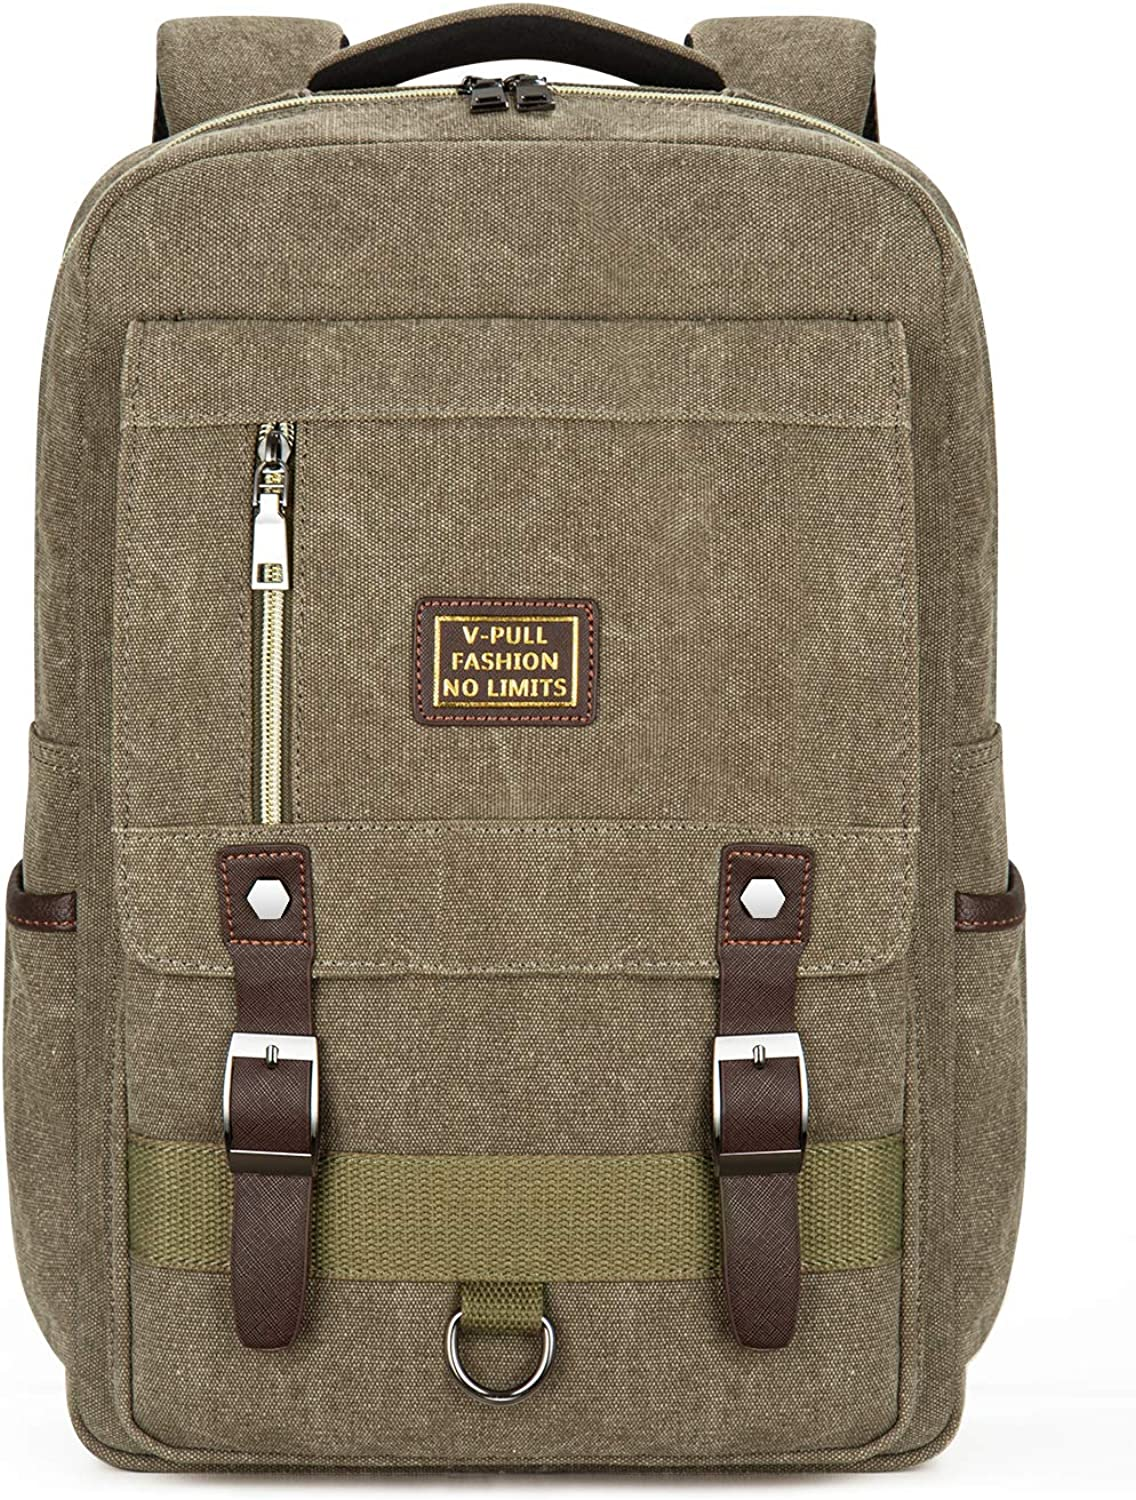 Canvas Laptop Backpack, Vintage Canvas Rucksack, Anti-Theft Backpack Fits 15.6 Inch Laptop